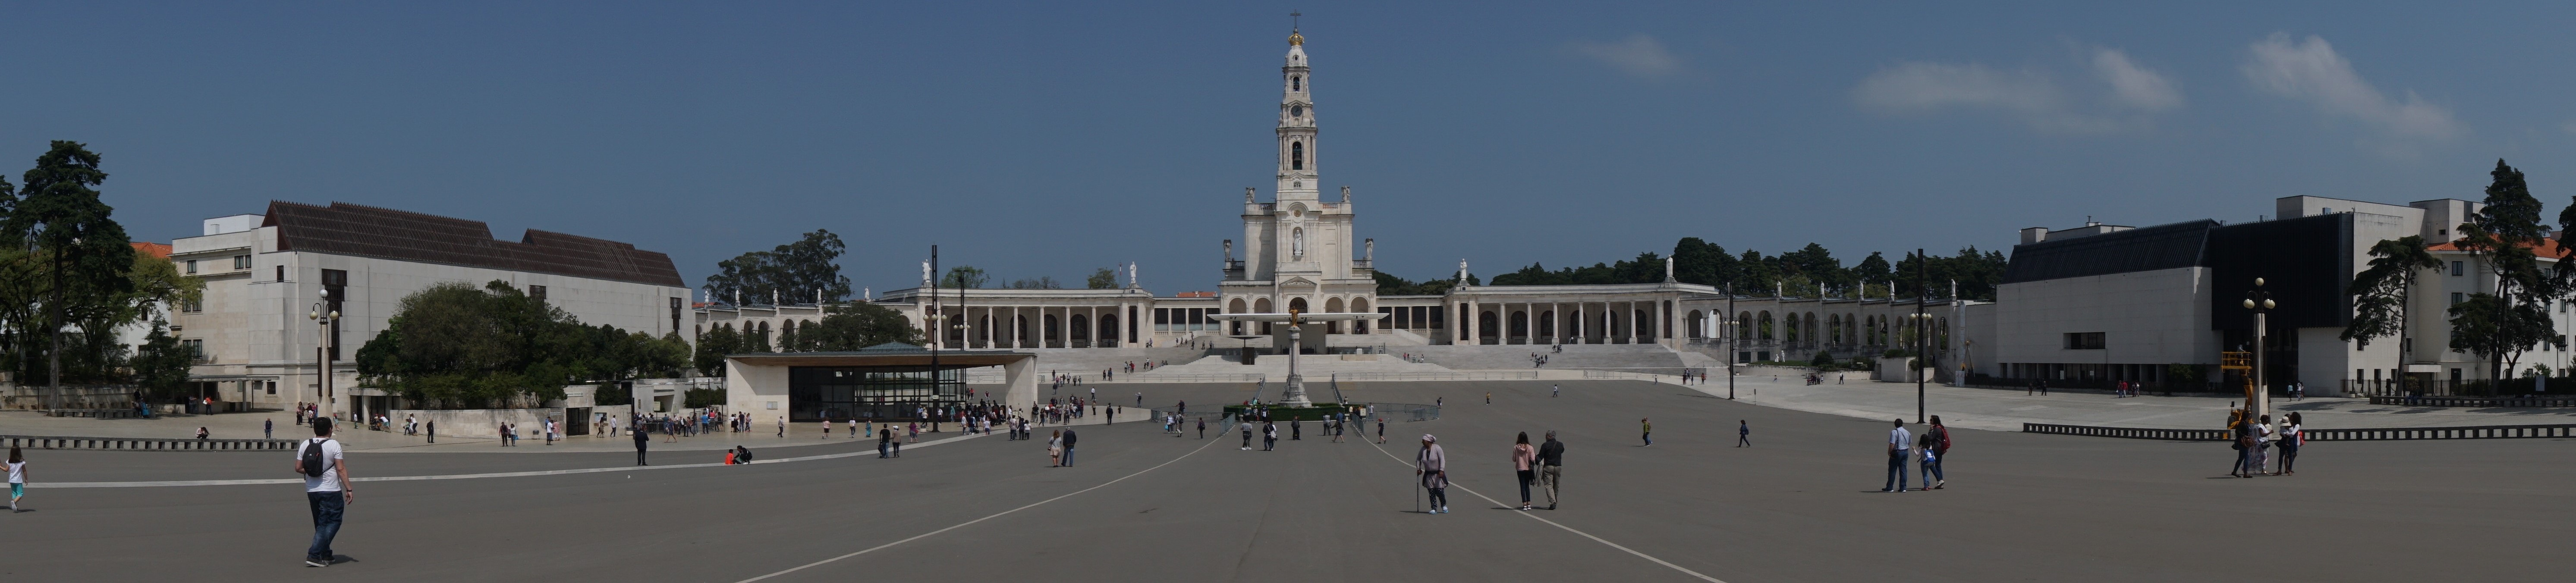 Fatima Pilgrimage: 100 Years and Counting